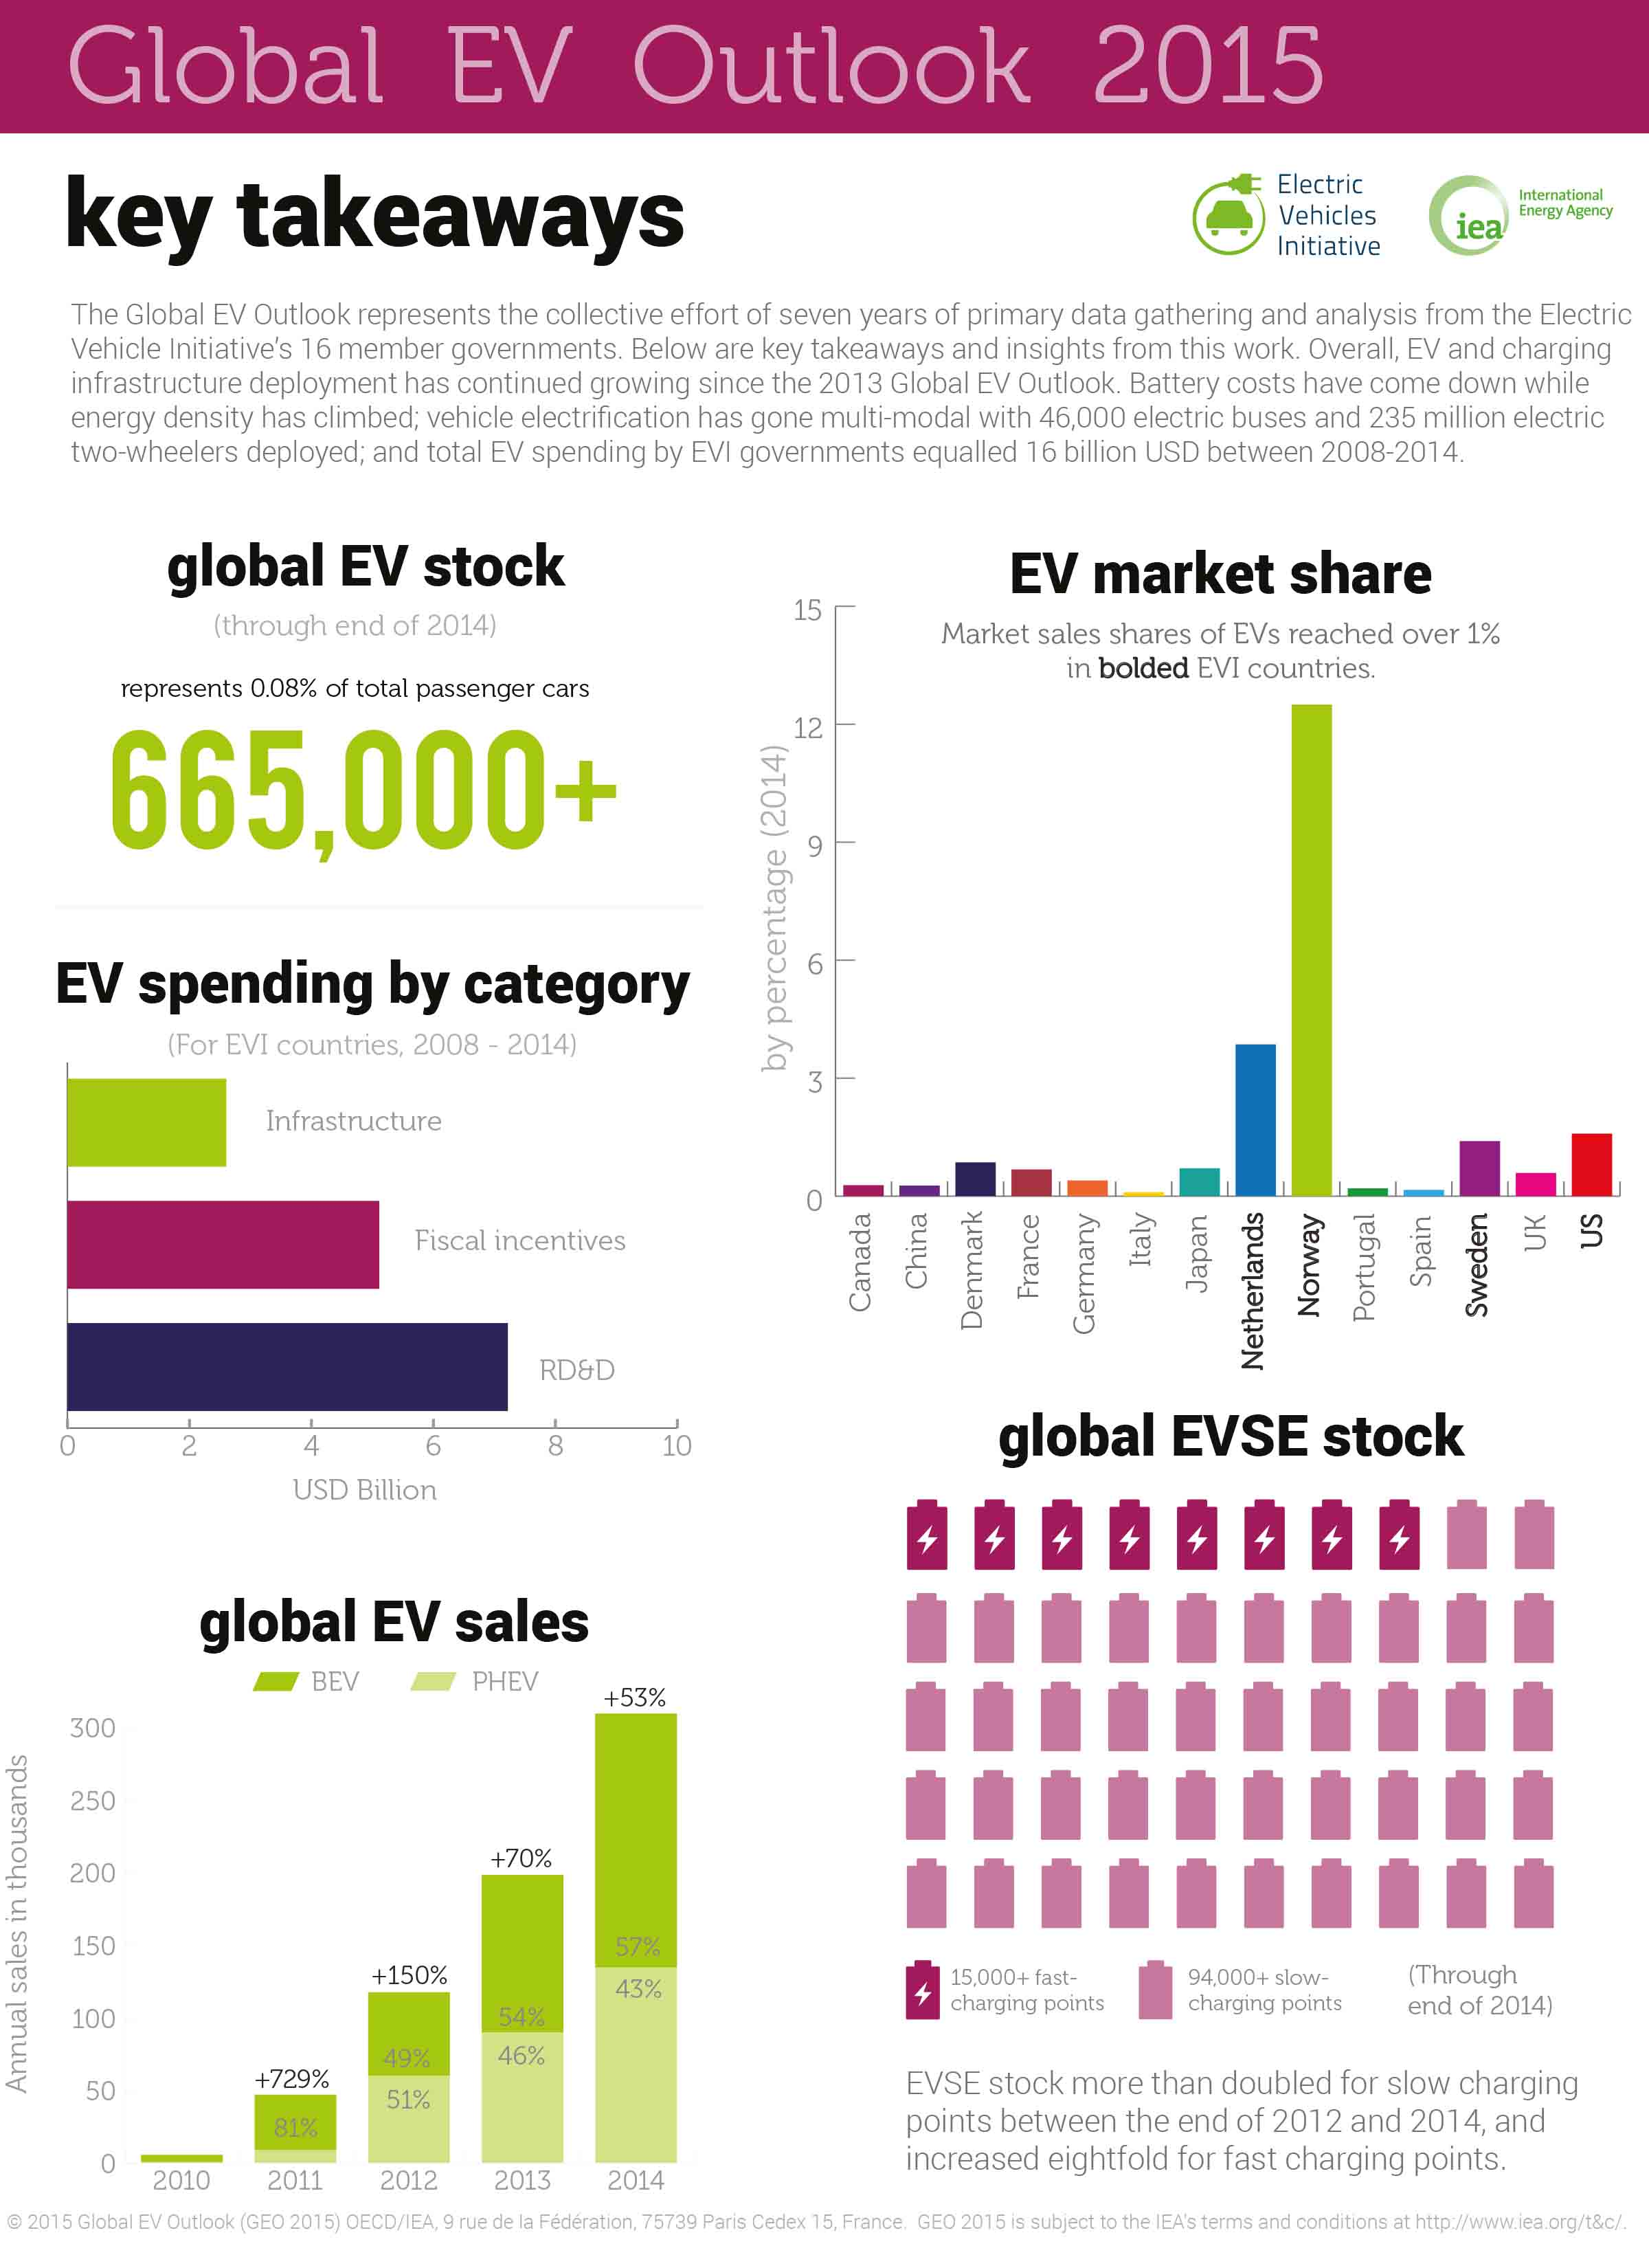 blogg-20150603-global EV 1 800